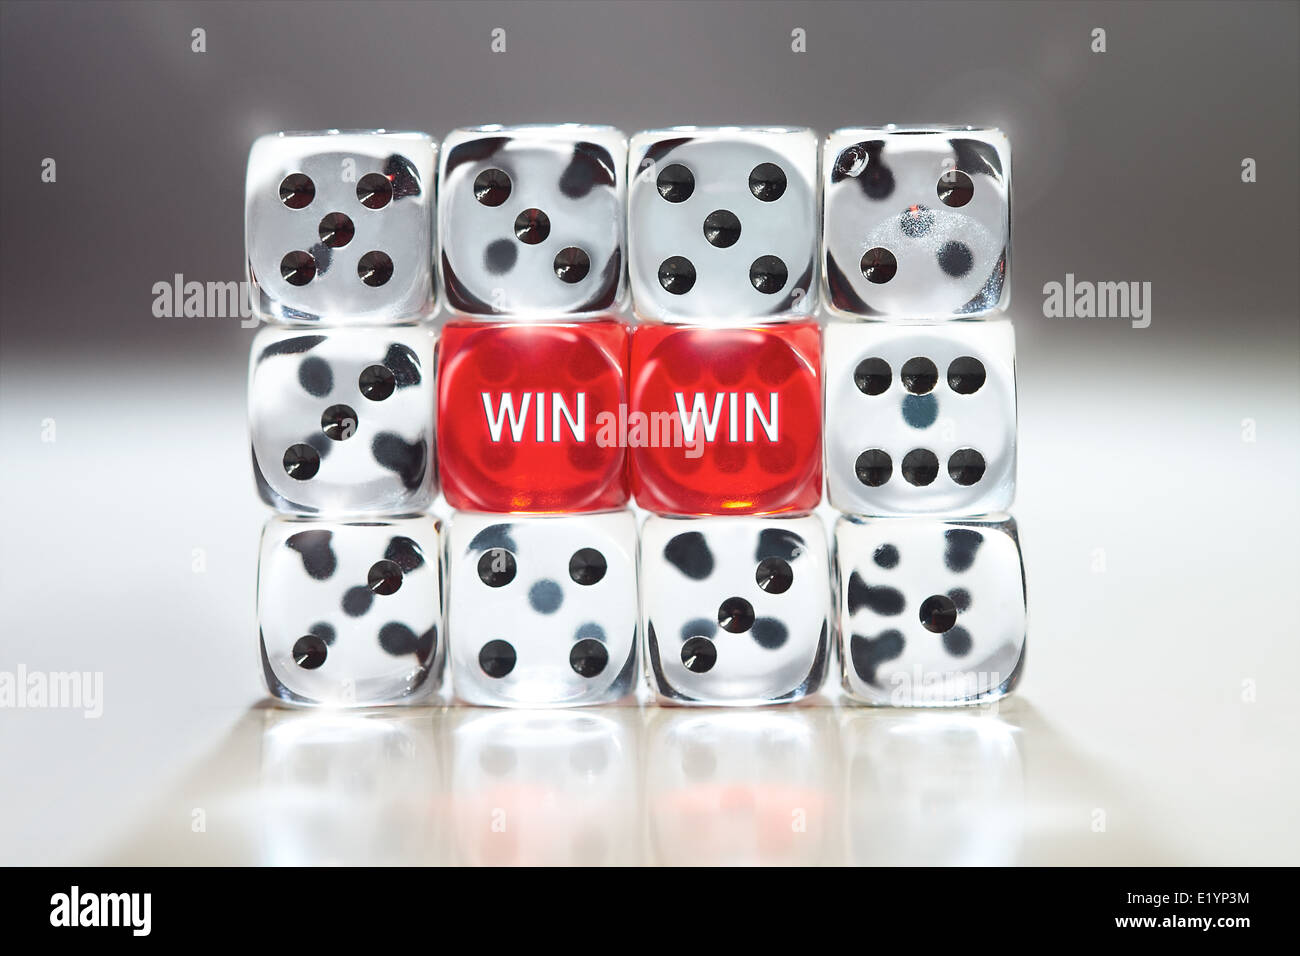 Win Win concept with two red dice supported in a wall of clear dice. - Stock Image